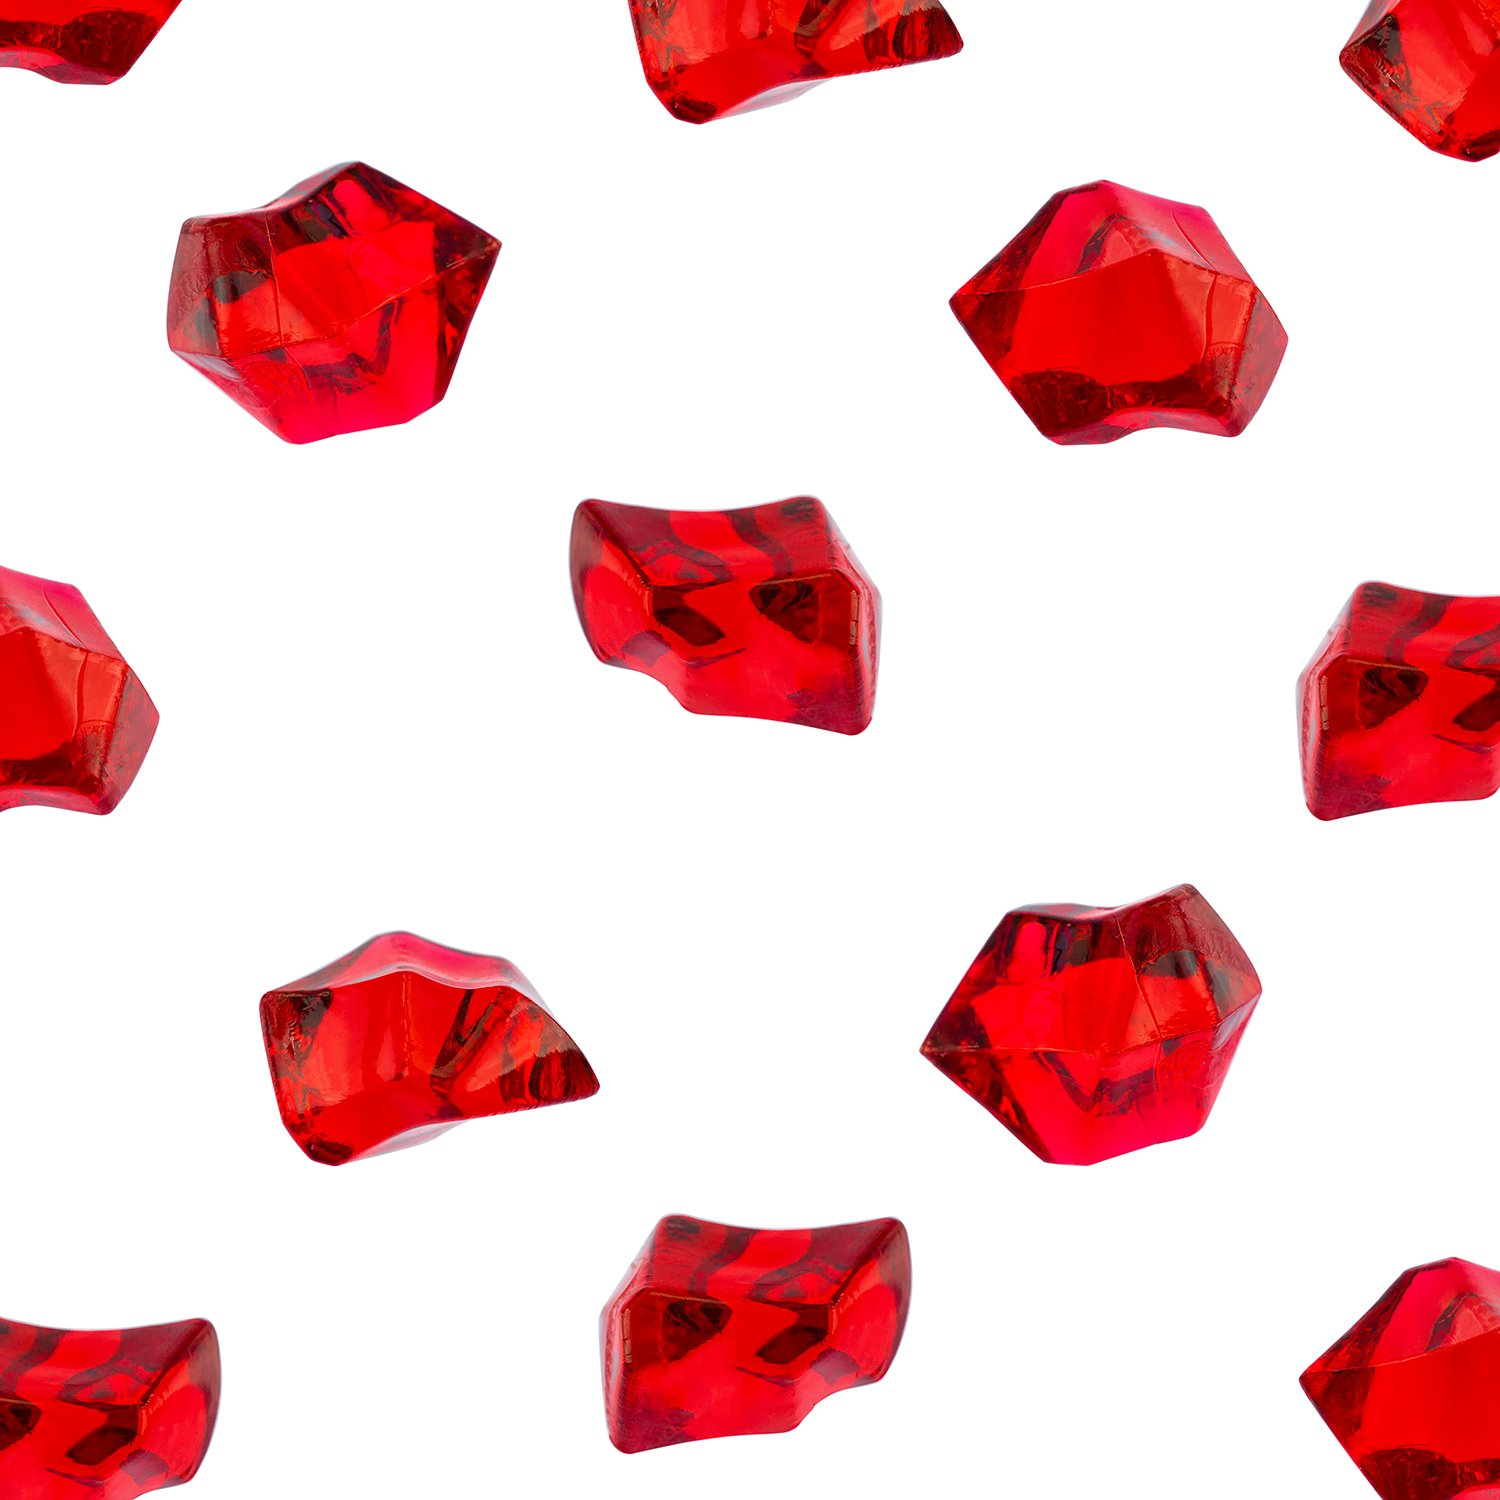 Acrylic Color Ice Rock Crystals Treasure Gems for Table Scatters, Vase Fillers, Event, Wedding, Birthday Decoration Favor, Arts & Crafts (385 Pieces) by Super Z Outlet (Red)